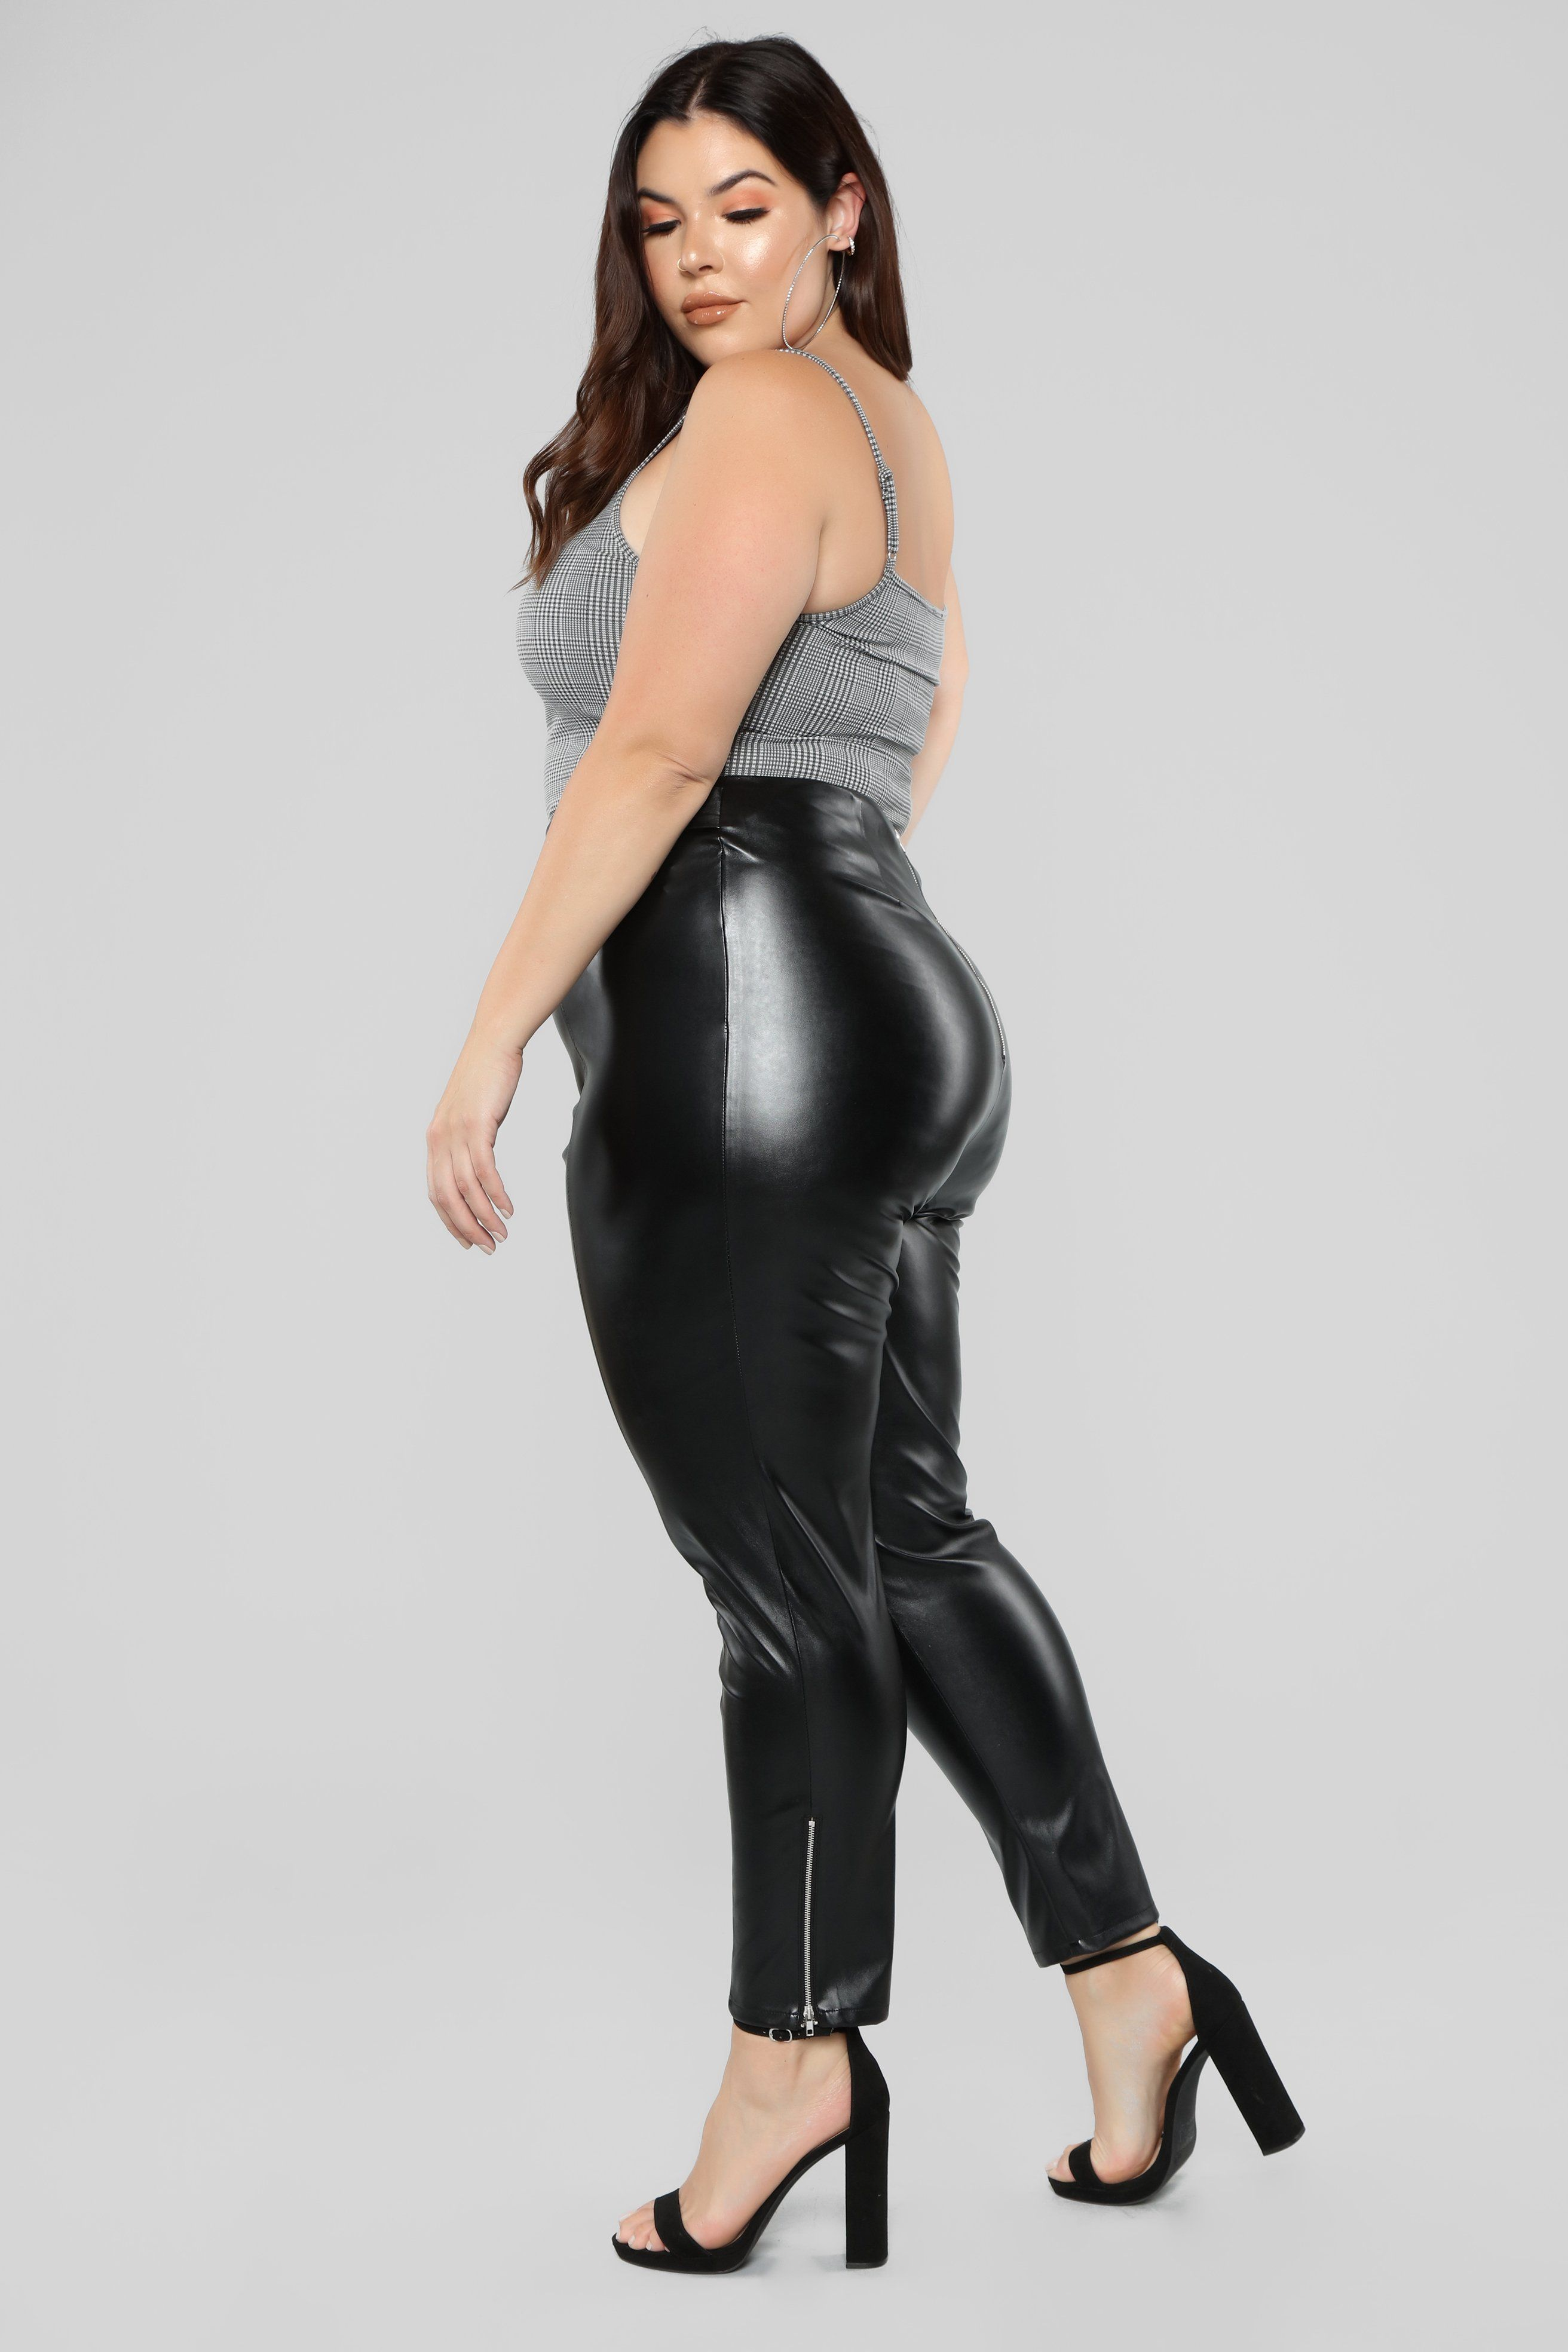 34f8c979 Pin by D 637C# on Curvy Leather, Latex & PVC 4 | Black pants ...